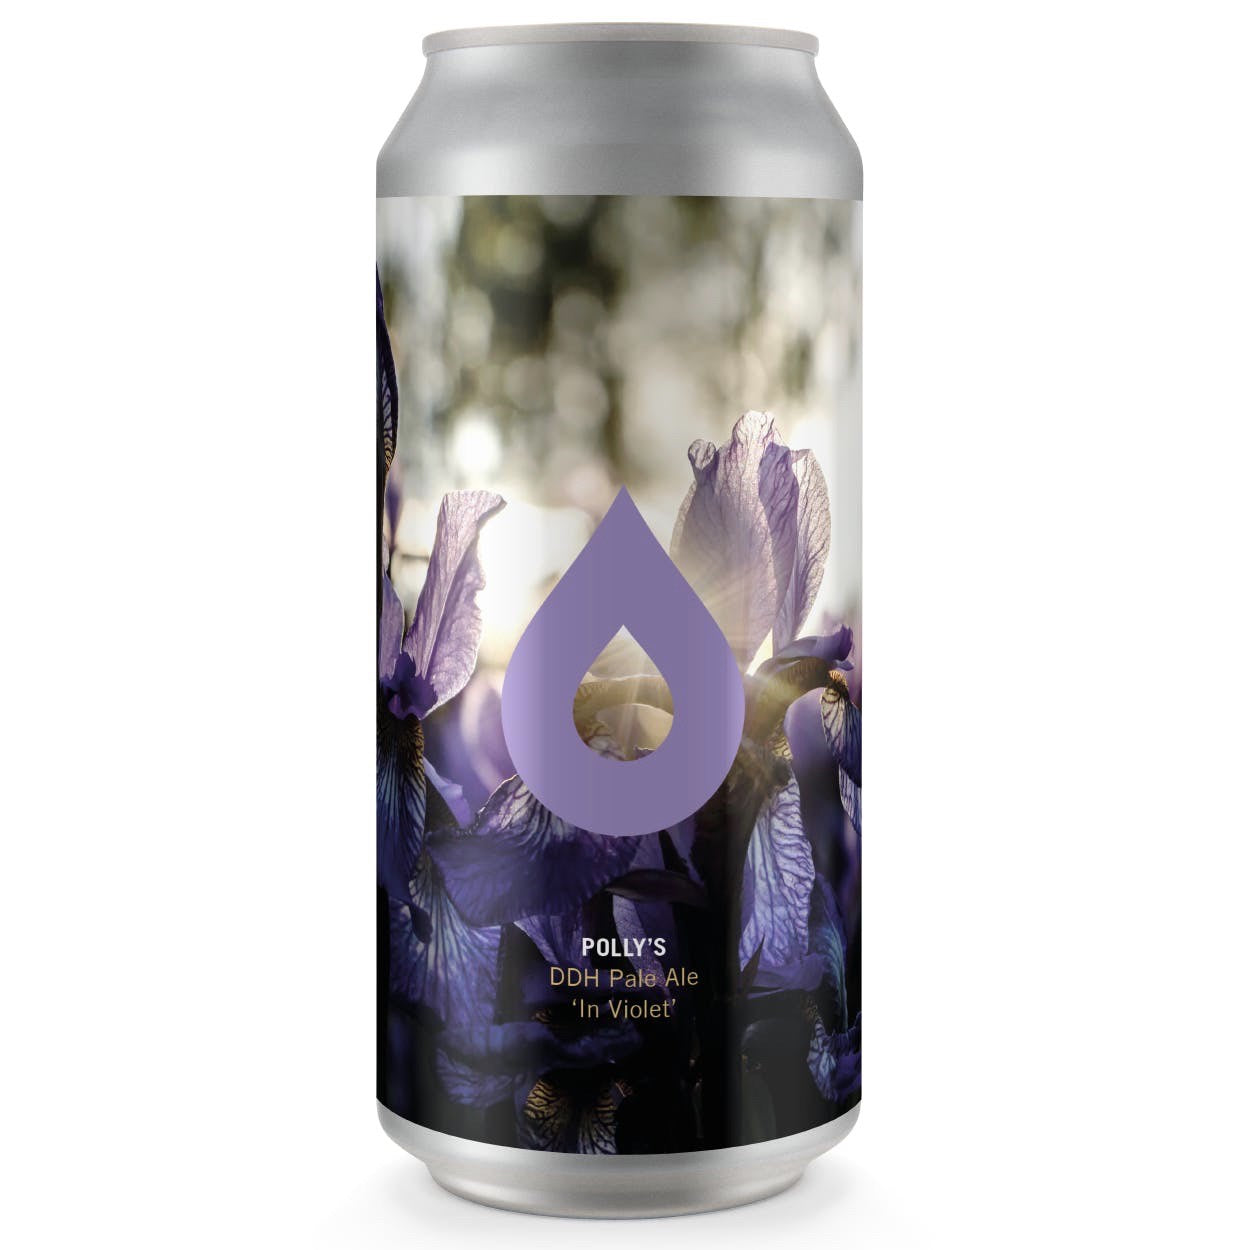 Polly's In Violet DDH Pale Ale 5.5% abv 440ml Can